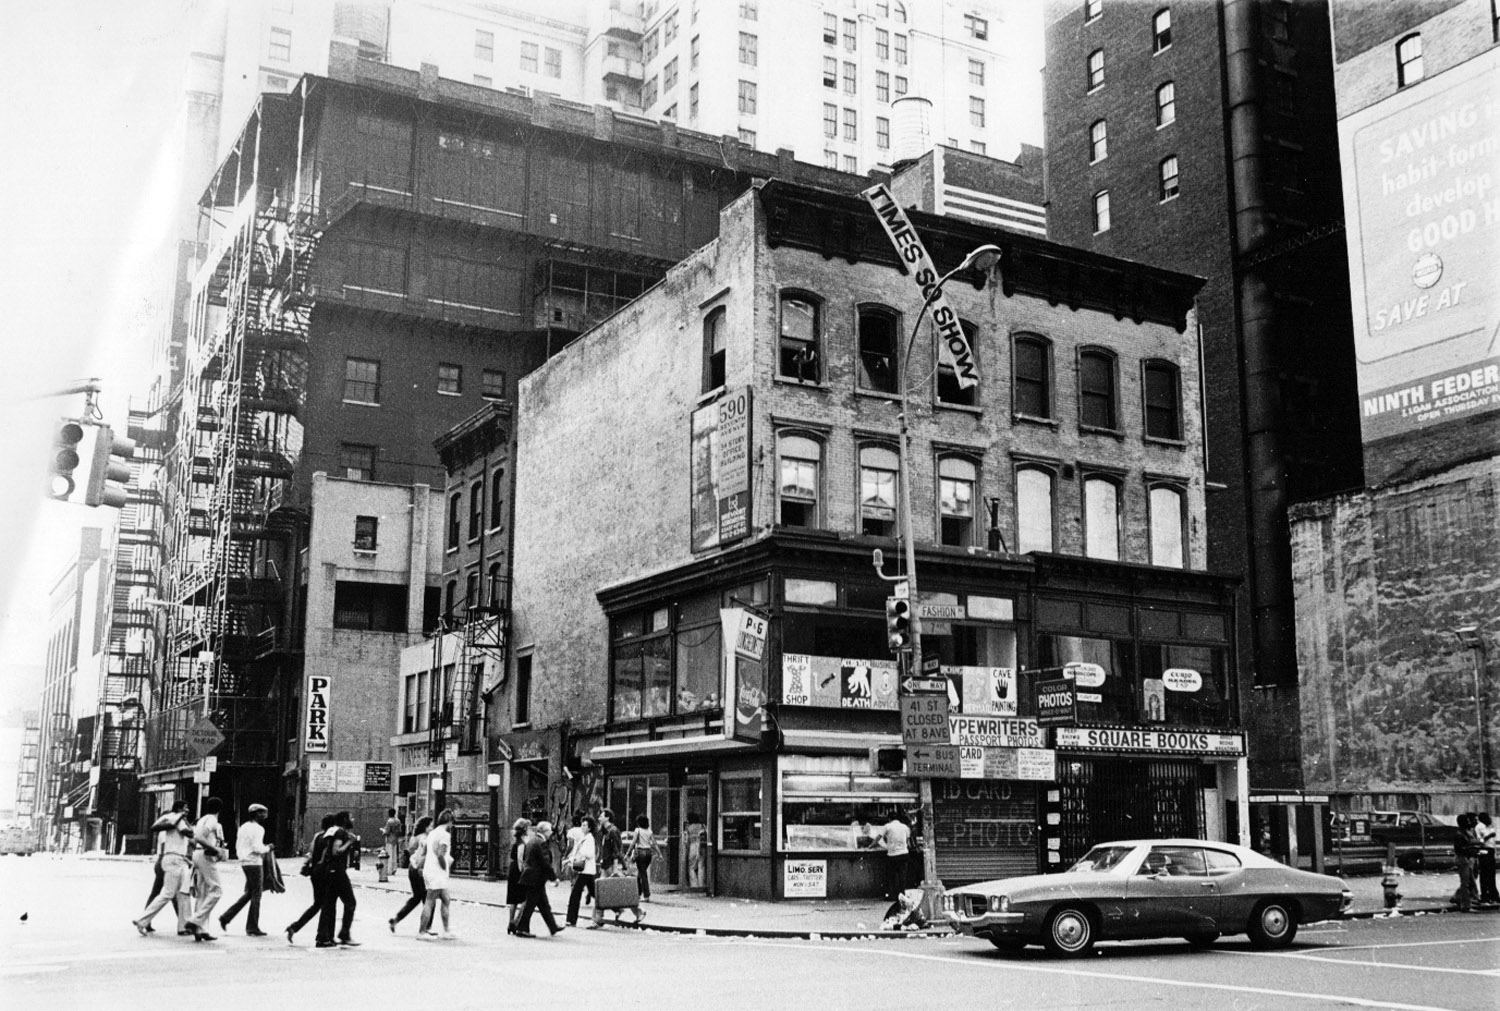 Site of the Time Square Show, an exhibition organized by Colab, 1980. Photo by Lisa Kahane